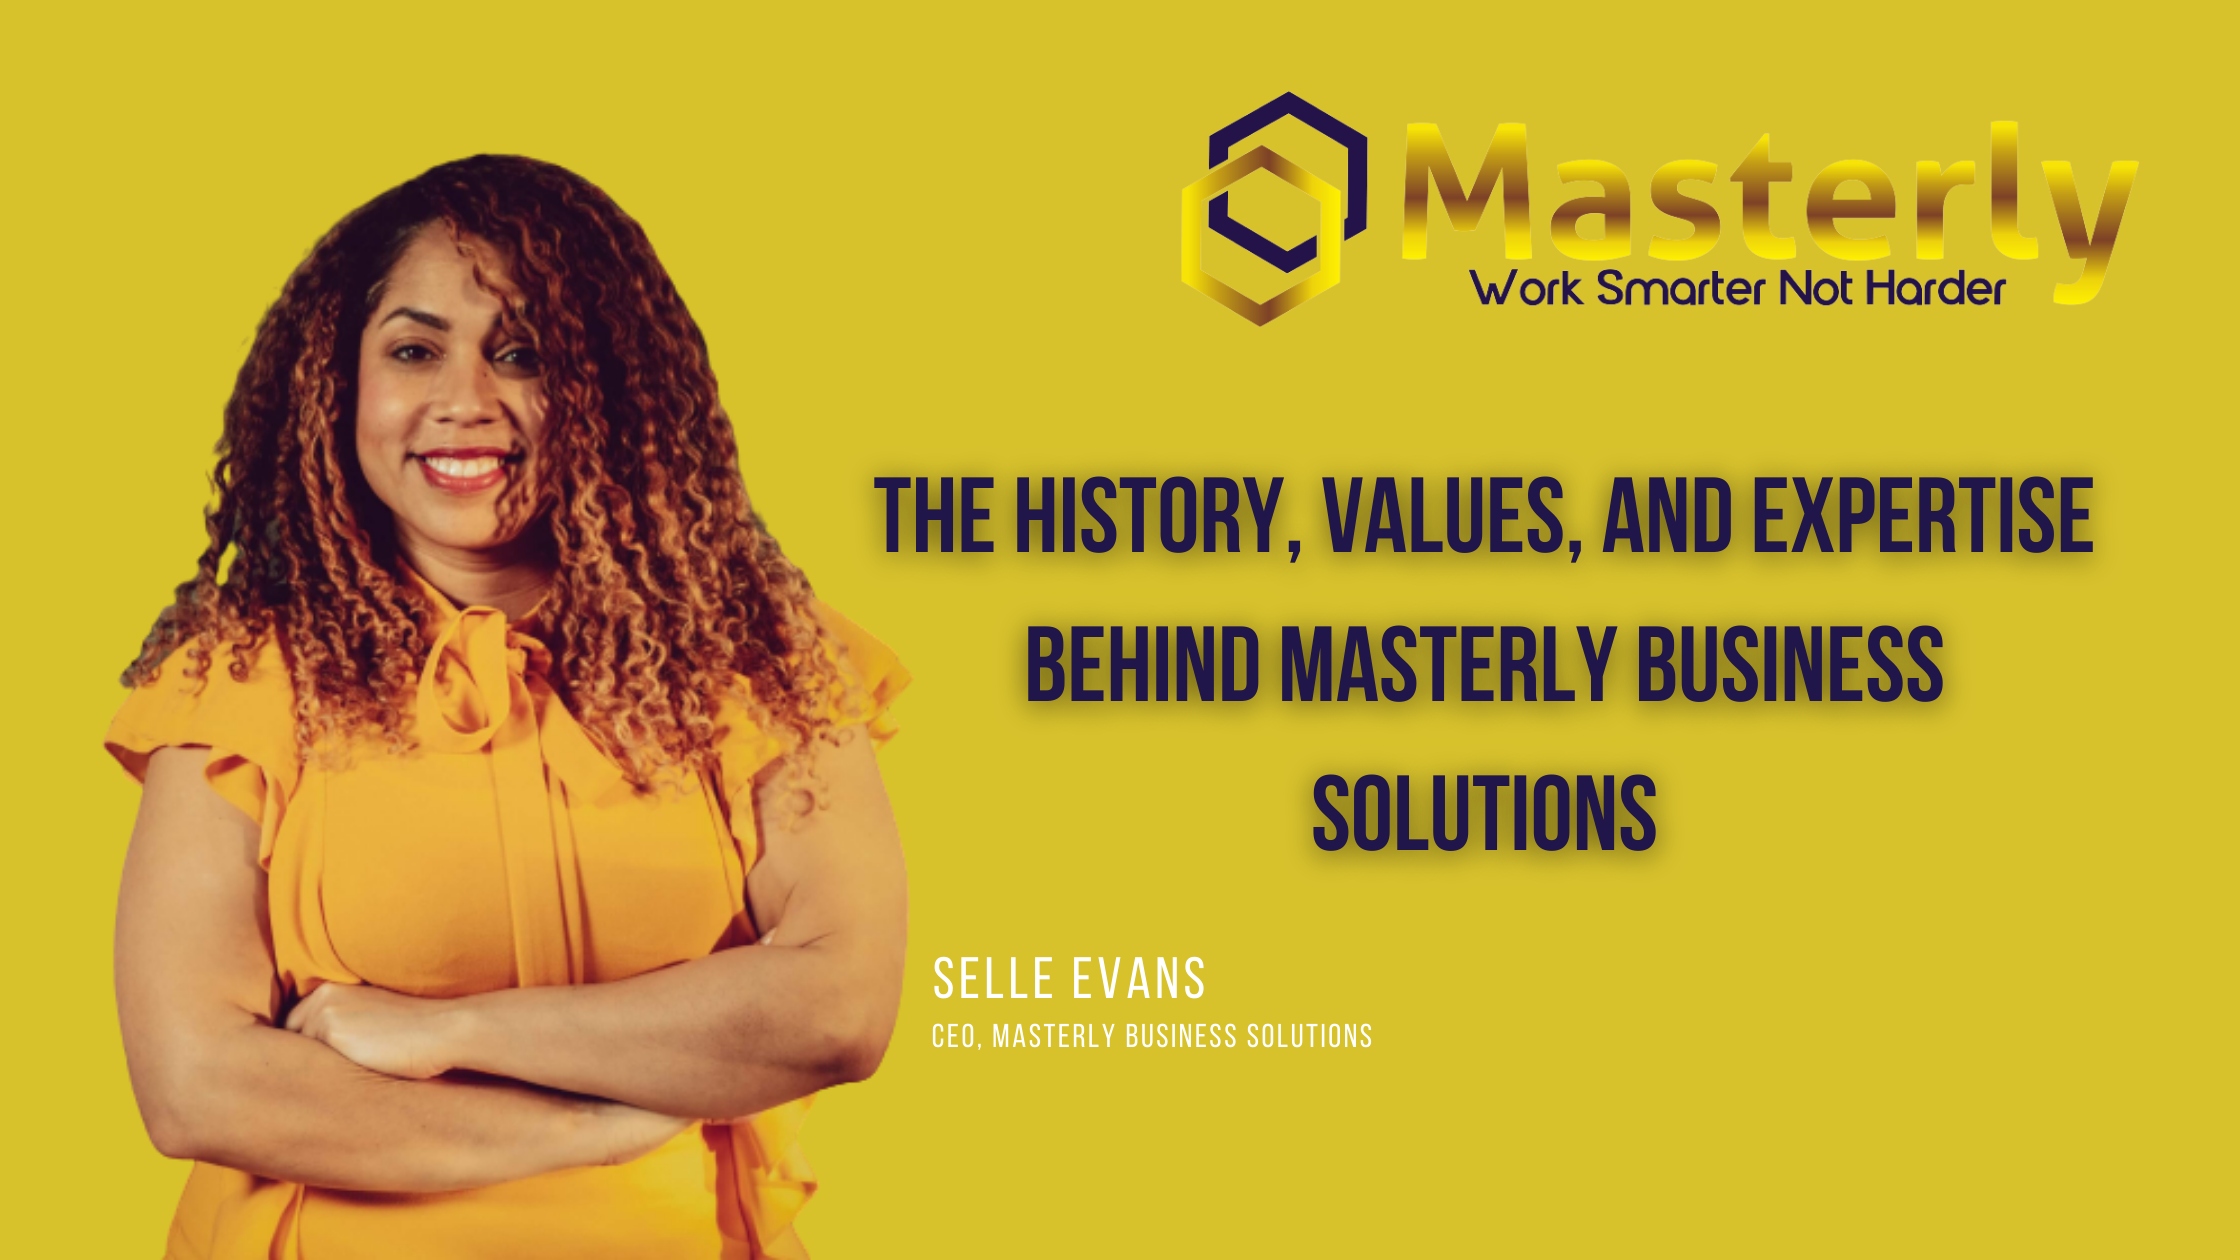 The History, Values, and Expertise Behind Masterly Business Solutions